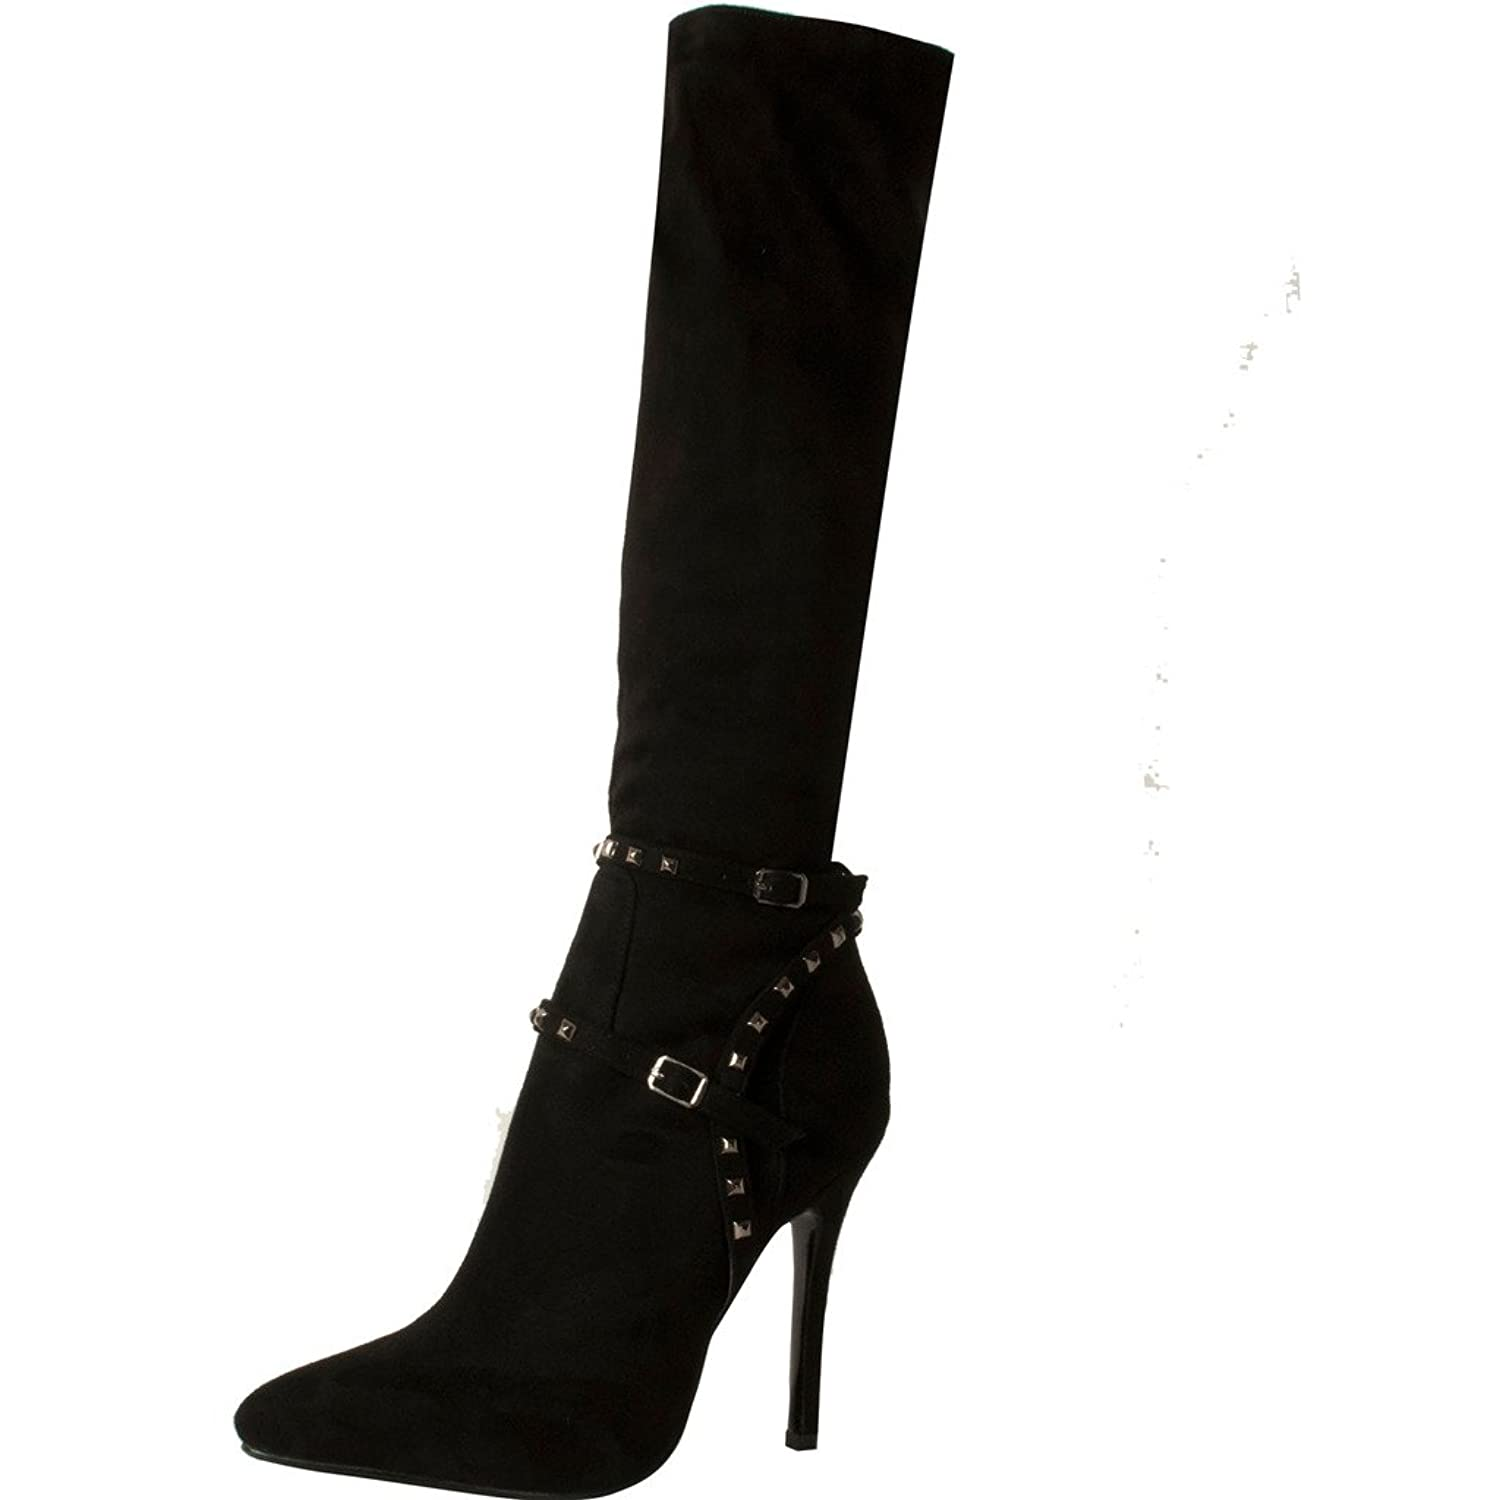 Womens Causually Designer Fashion Sexy Sweet High Heel Rivet Studded Buckle Pointed Toe 9.5CM Stiletto Zipper Boots